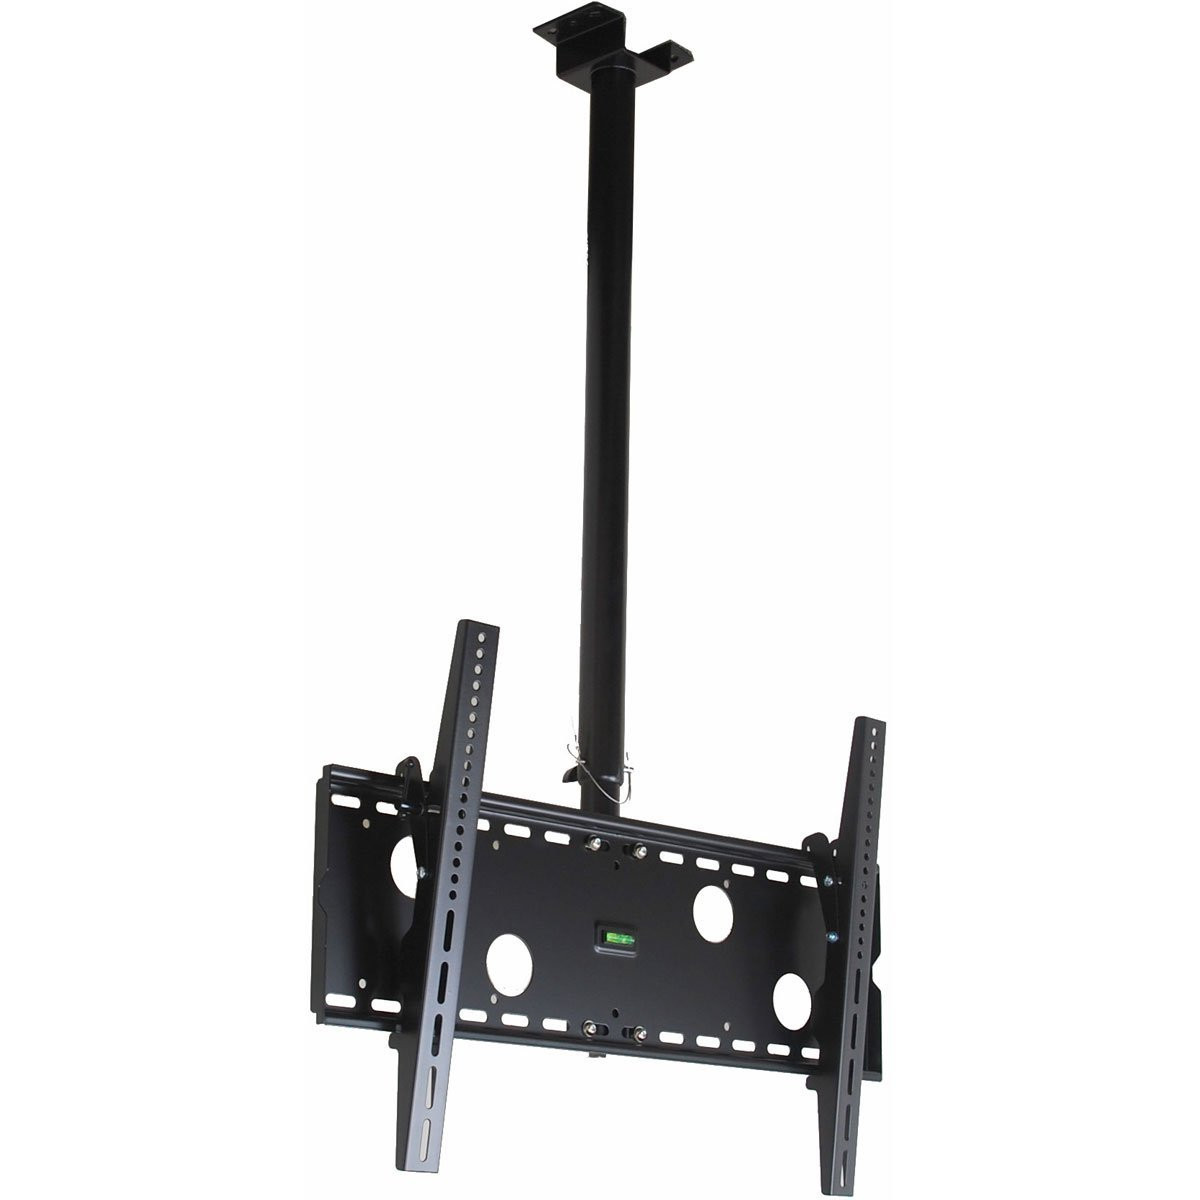 videosecu mpc51b tv ceiling mount. Black Bedroom Furniture Sets. Home Design Ideas